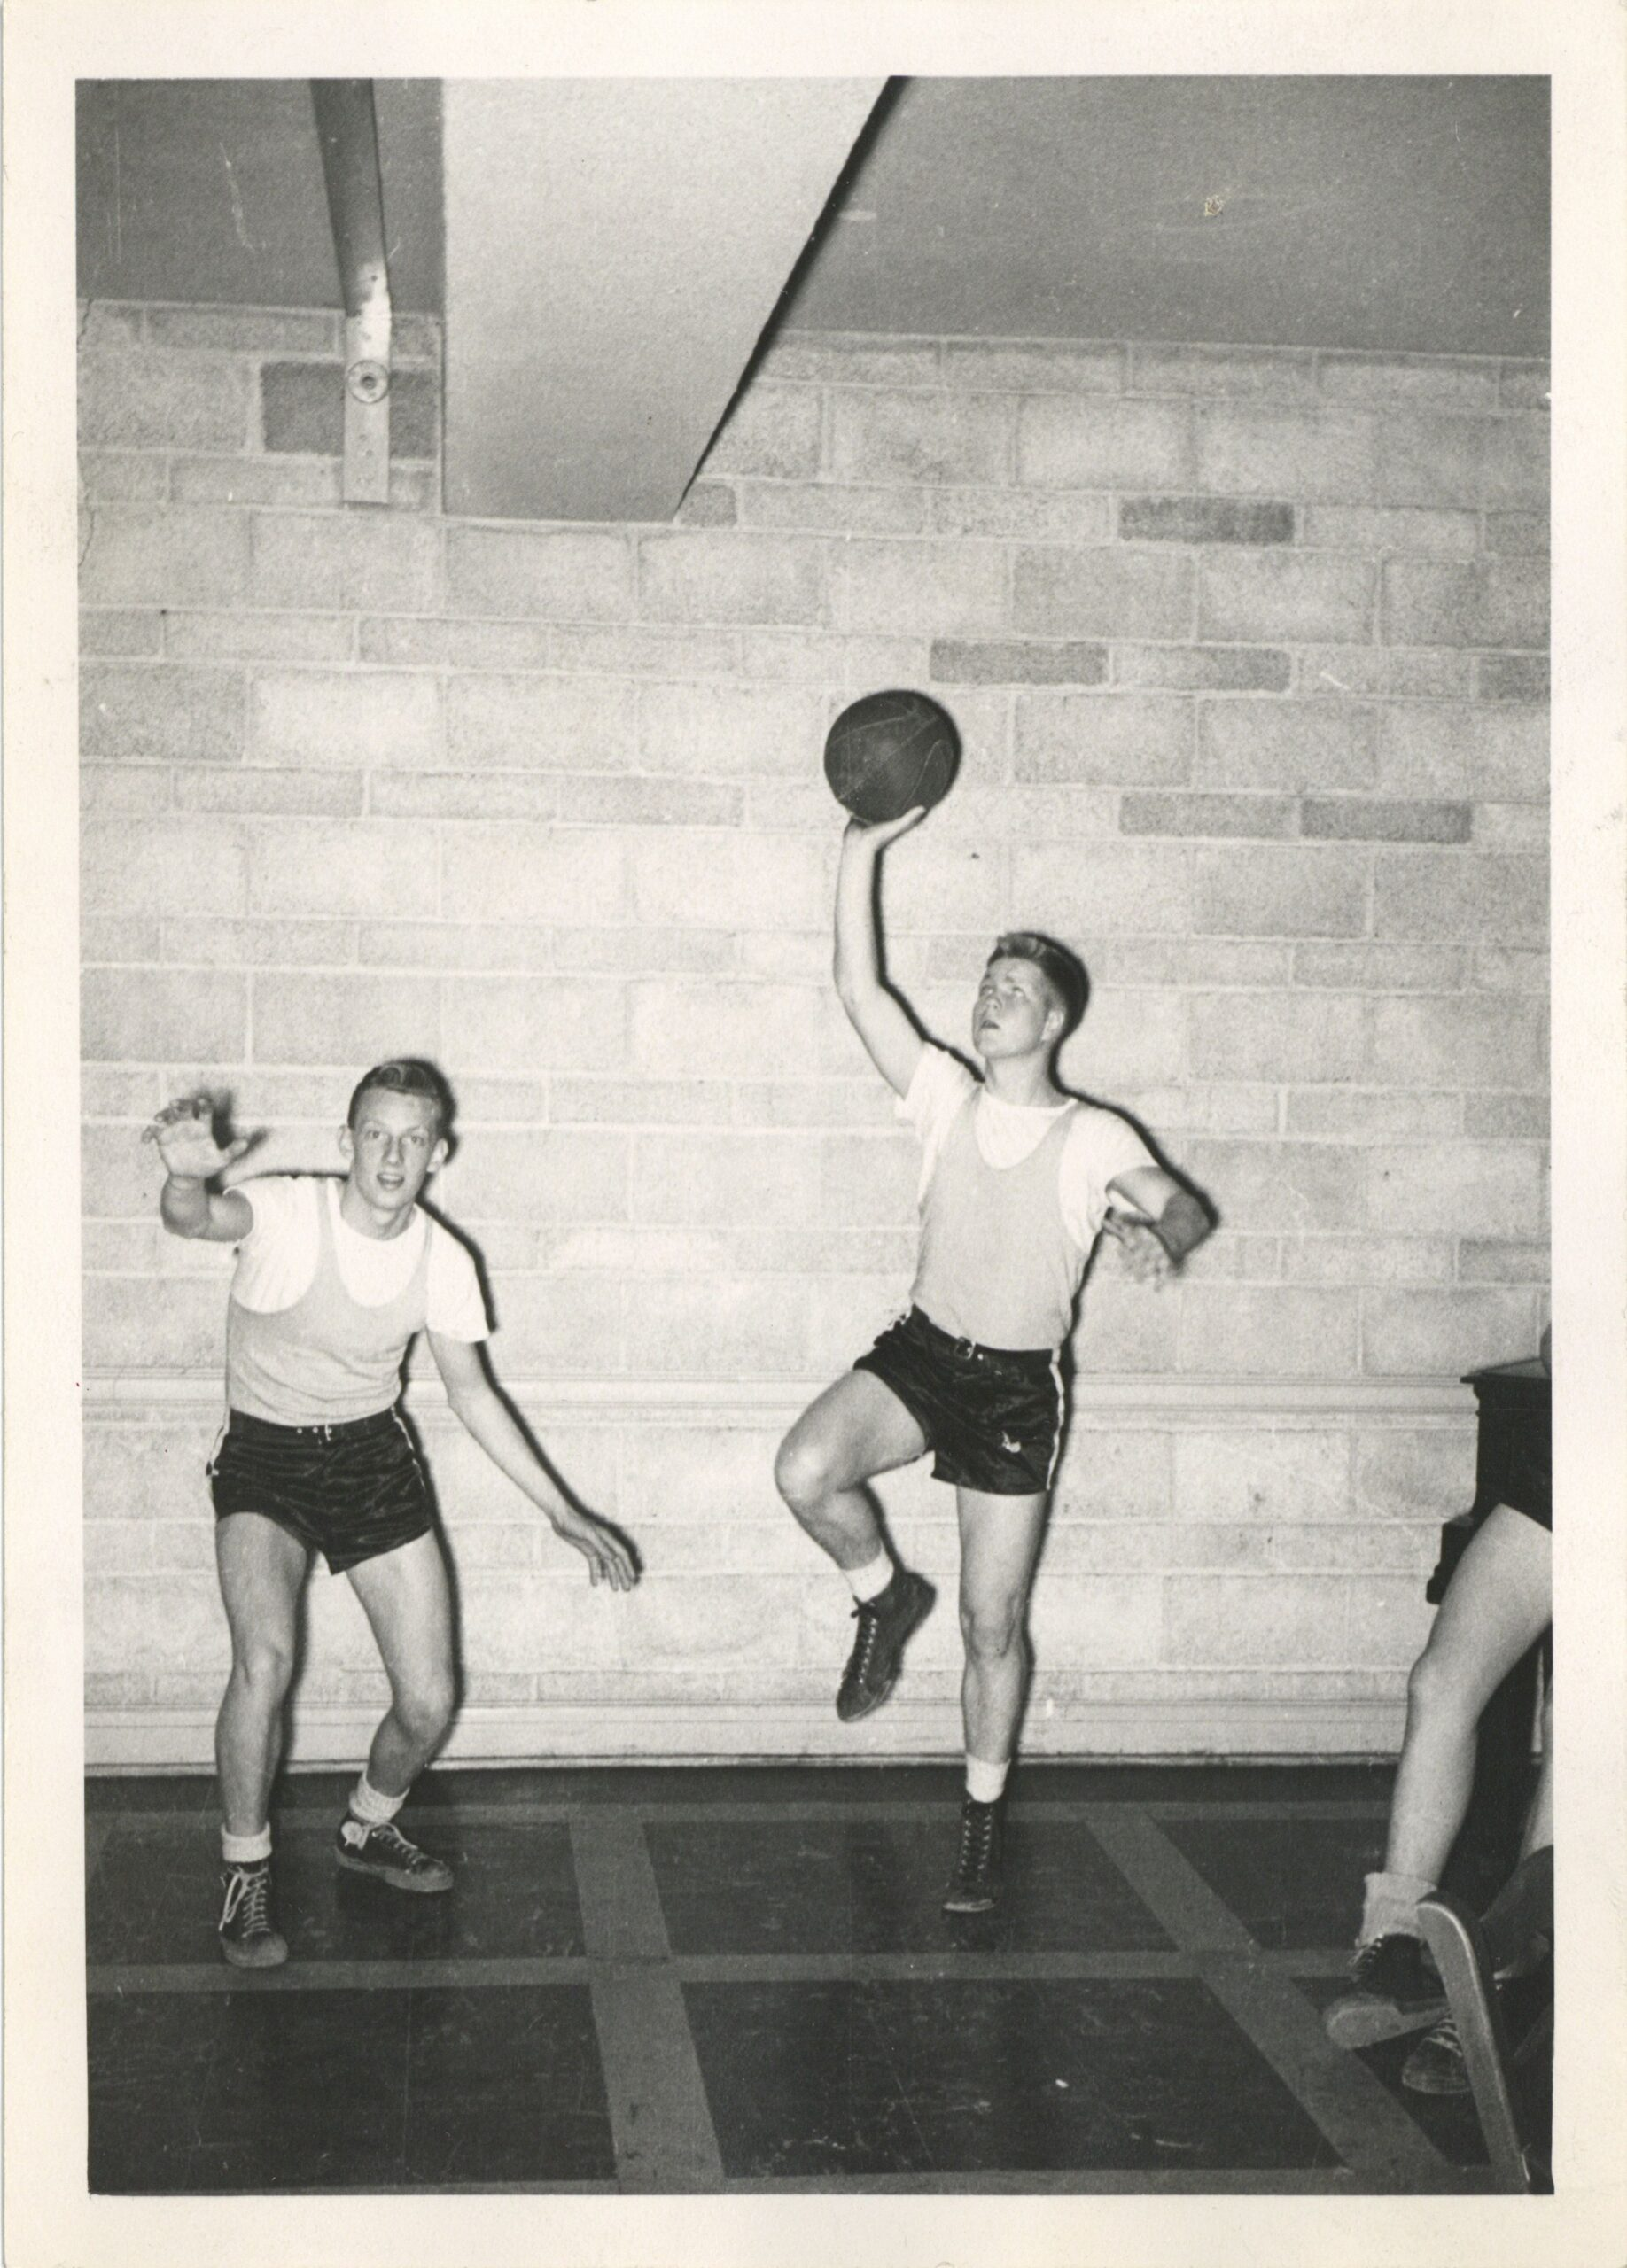 Image depicts a black and white photo of men playing indoor basketball